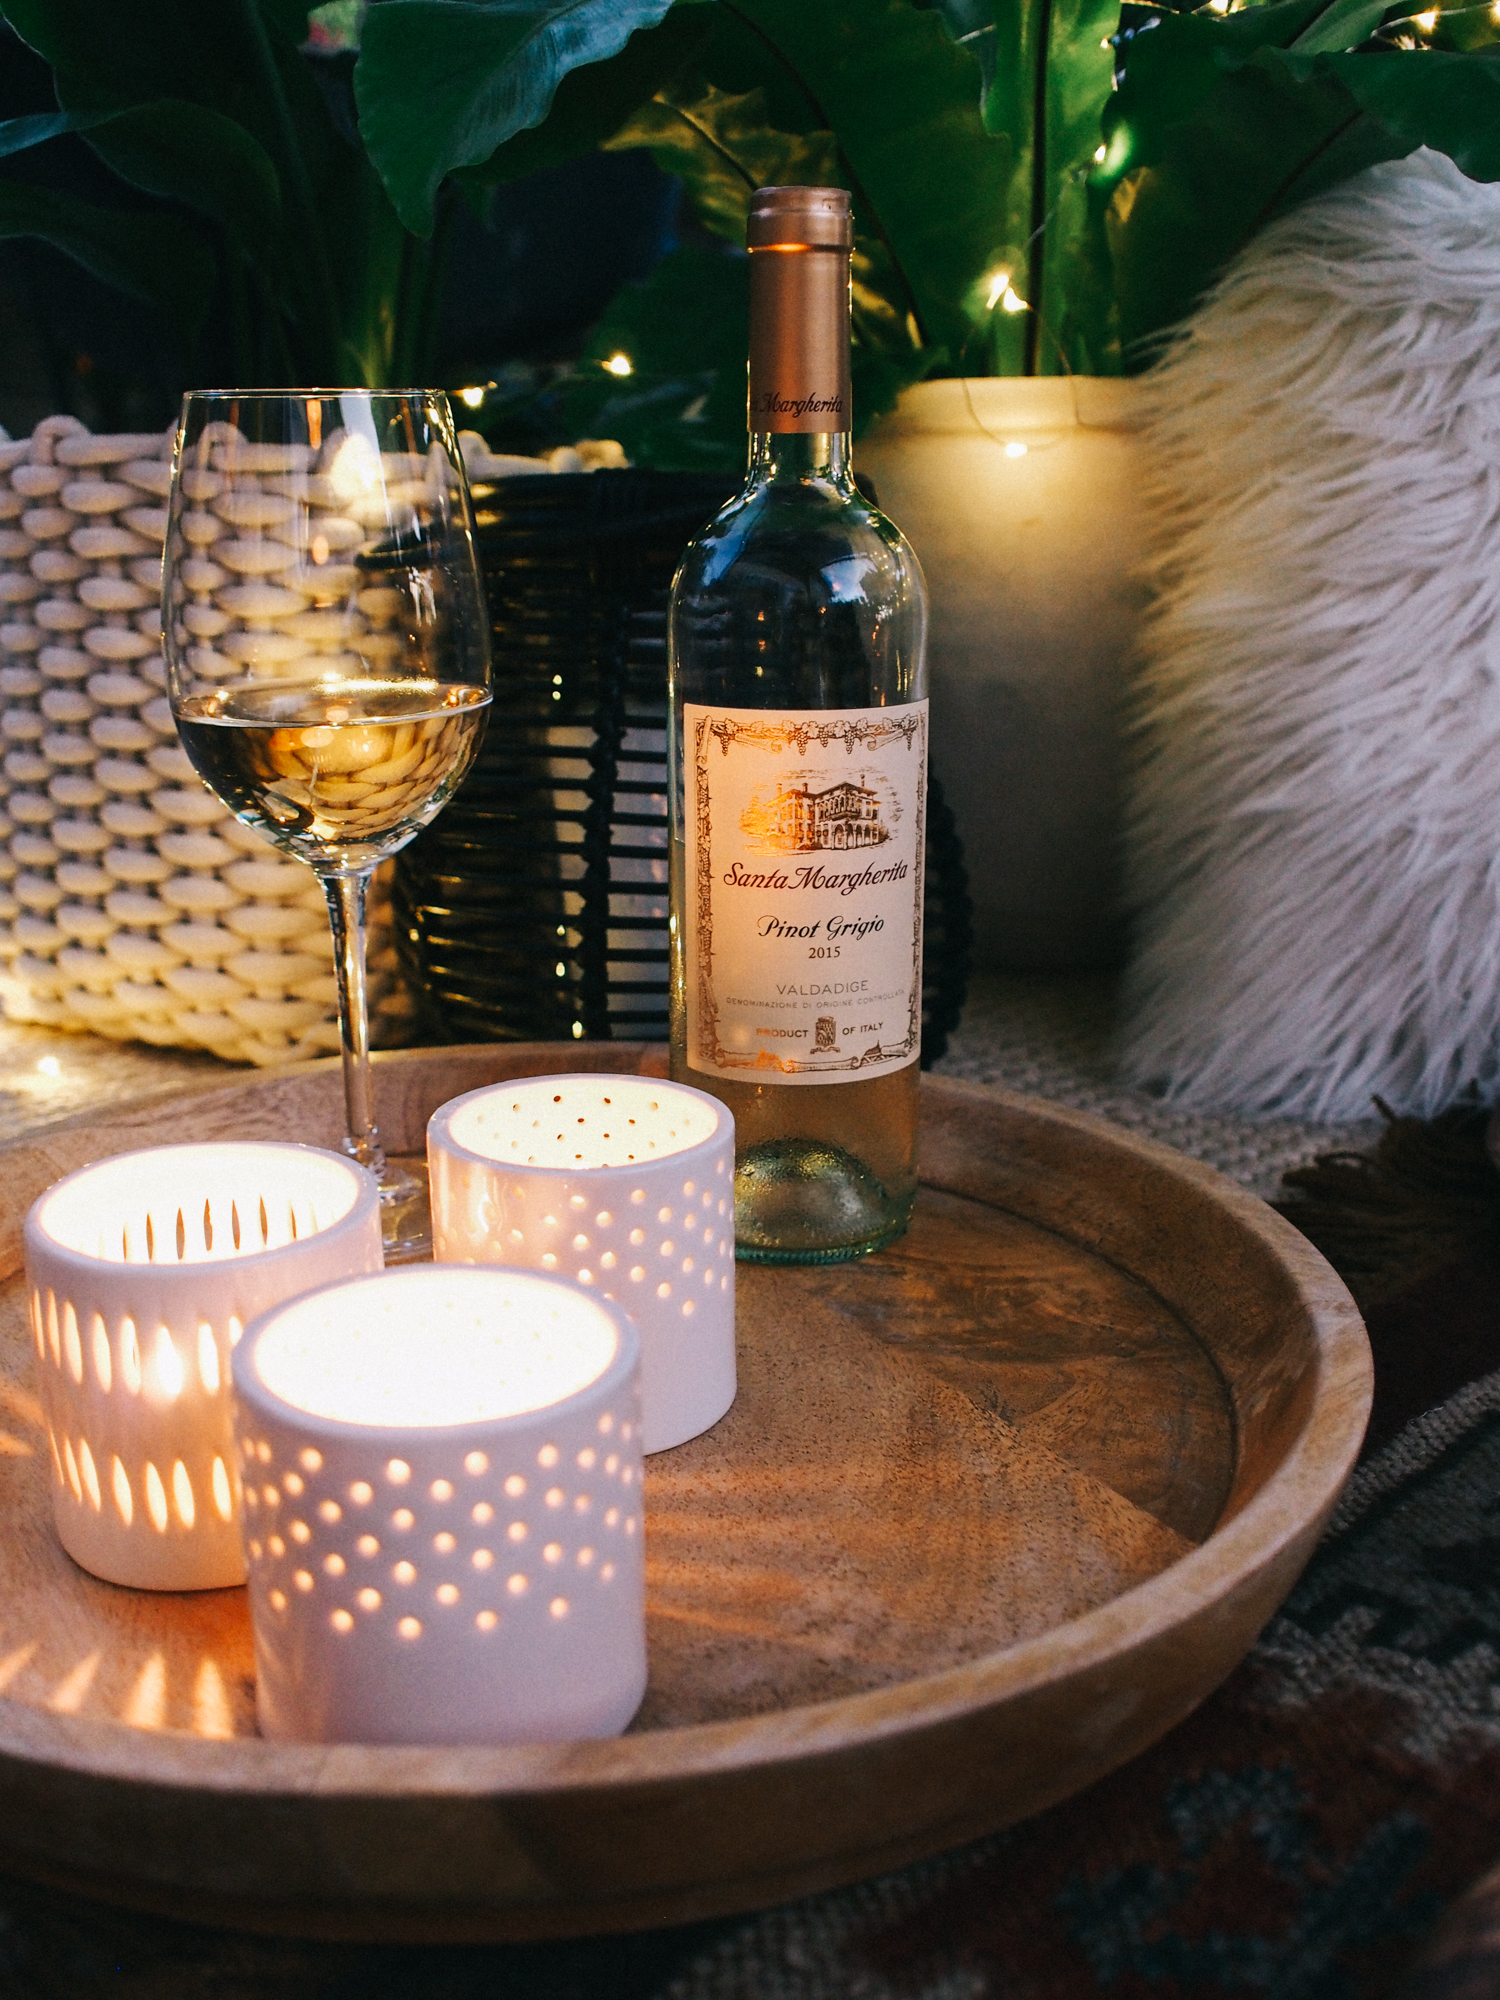 Refreshing Pinot Grigio is our fave for summer BBQ's, more entertaining tips on the blog! | A Fabulous Fete